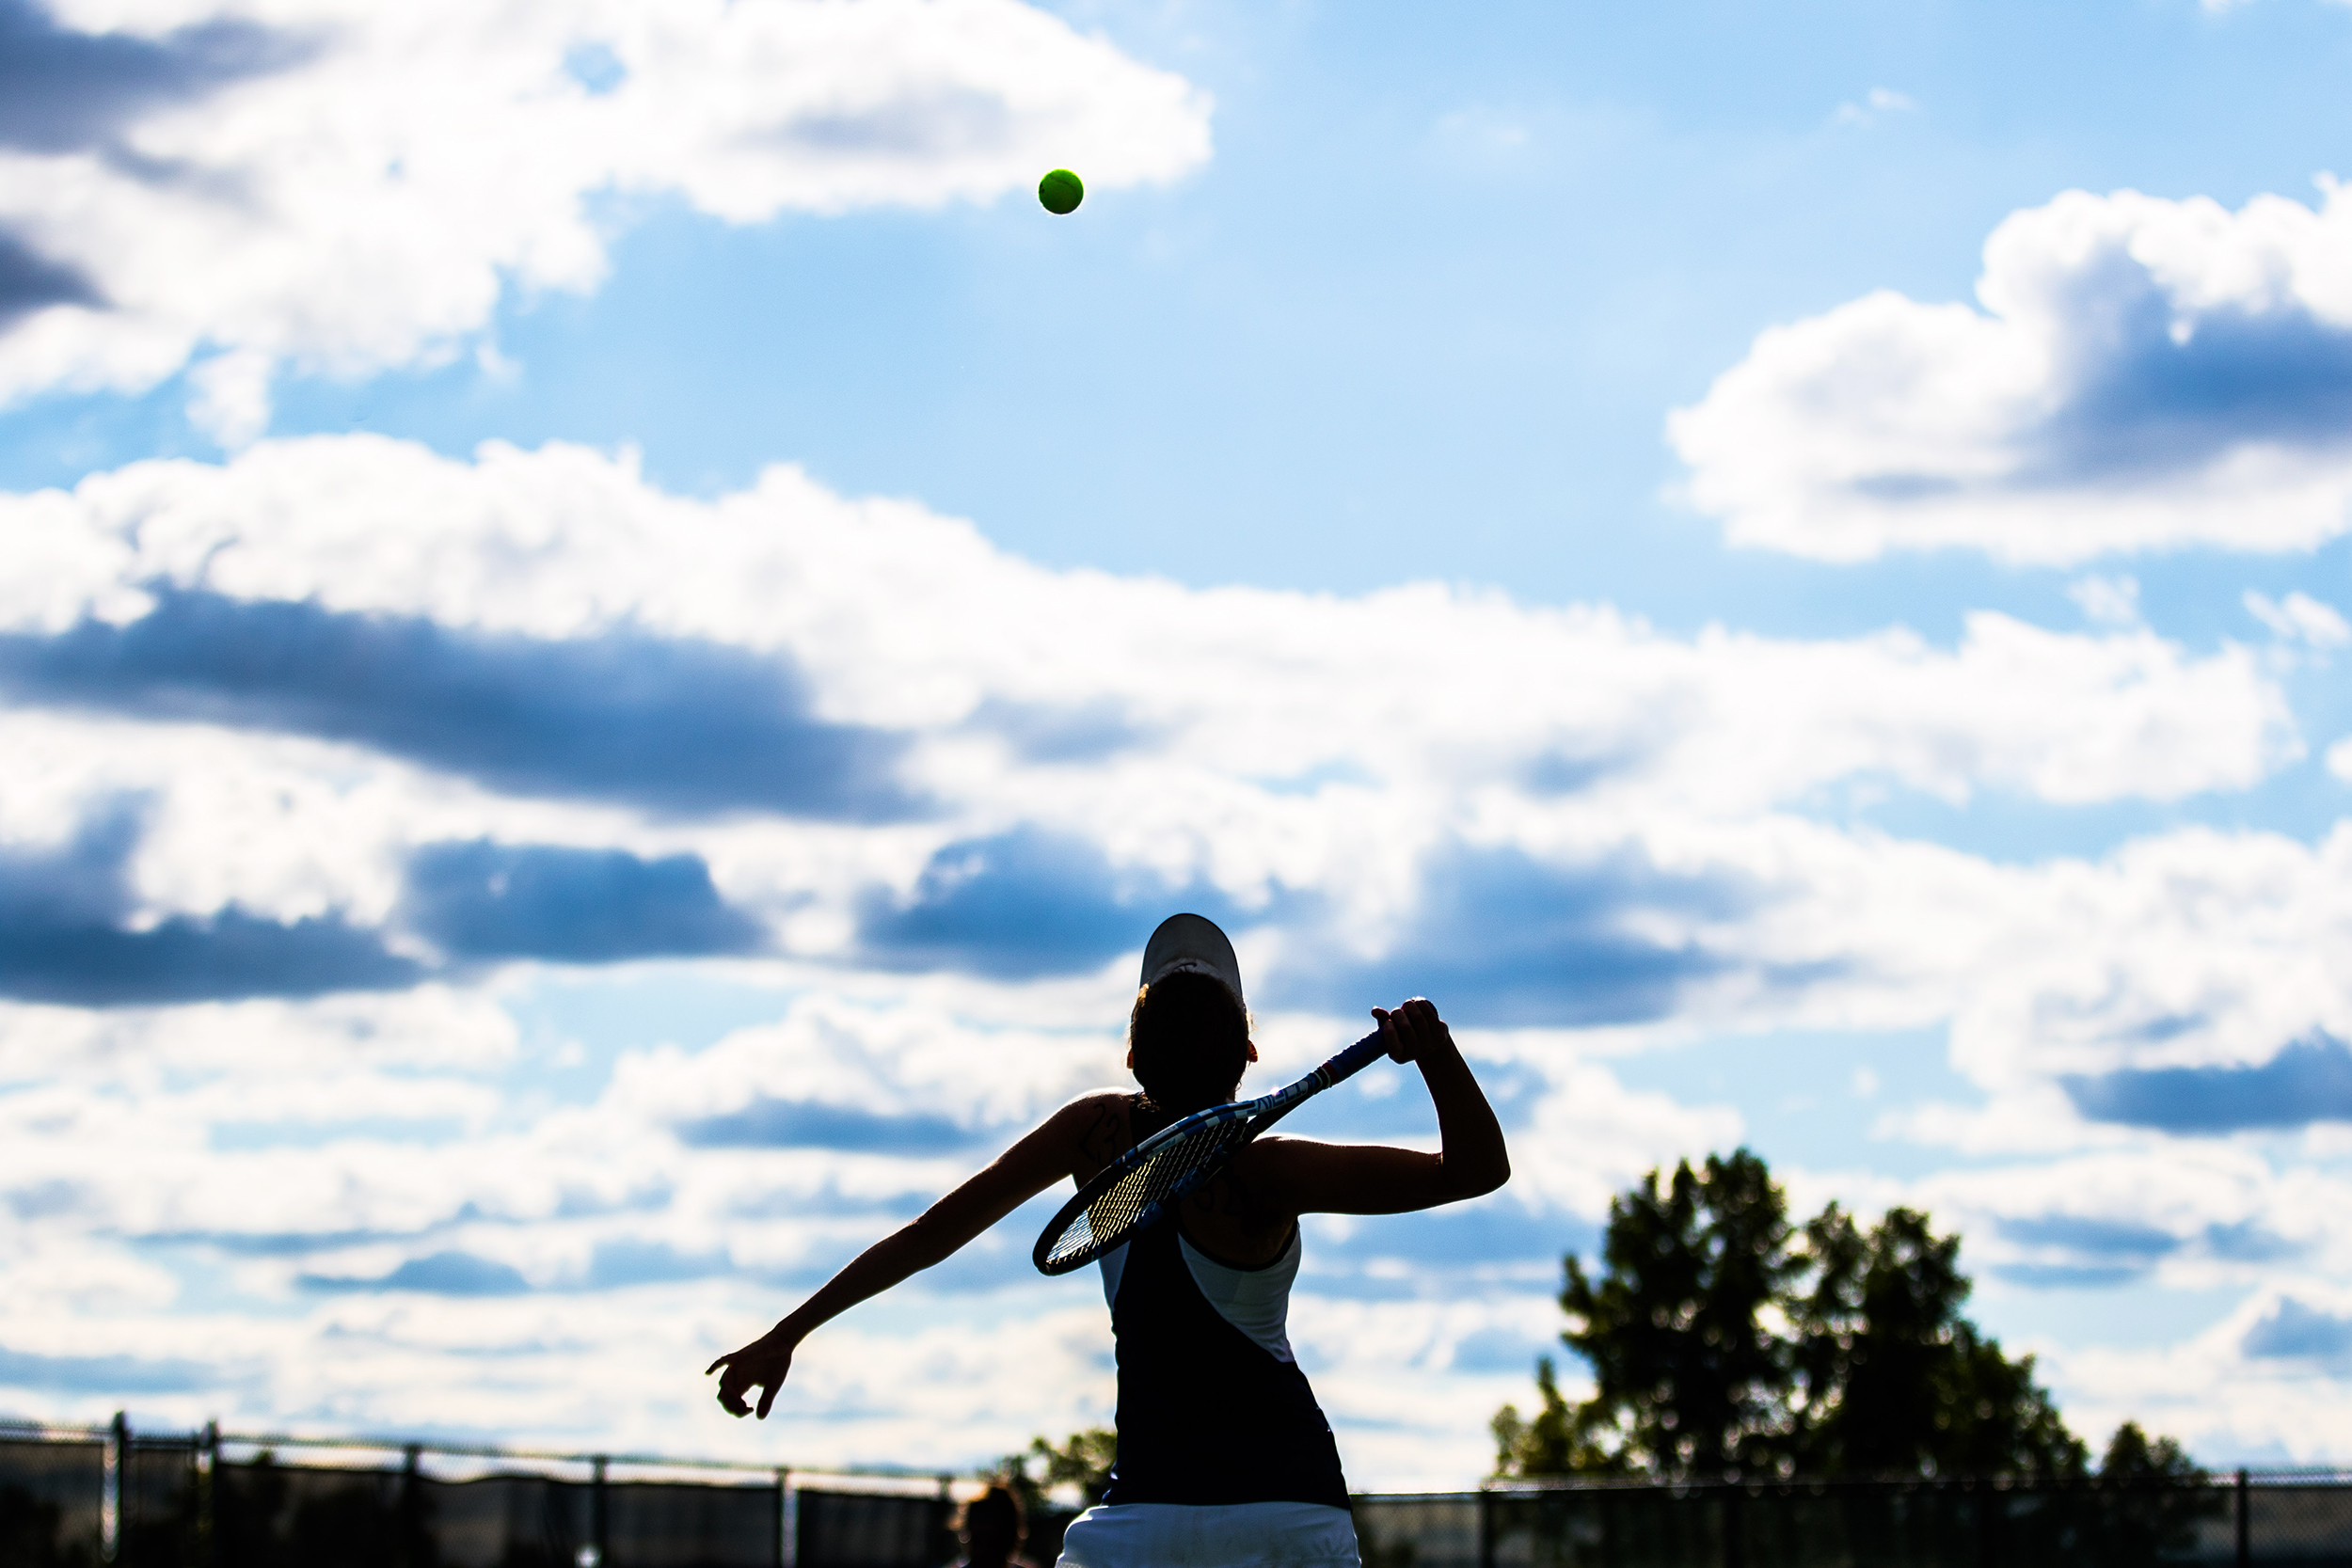 The Geneseo Women's tennis team has won many accolades over the years , and under coach Stephens, who recently resigned citing problems with the commute (Keith Walters/Director of Multi-Media).